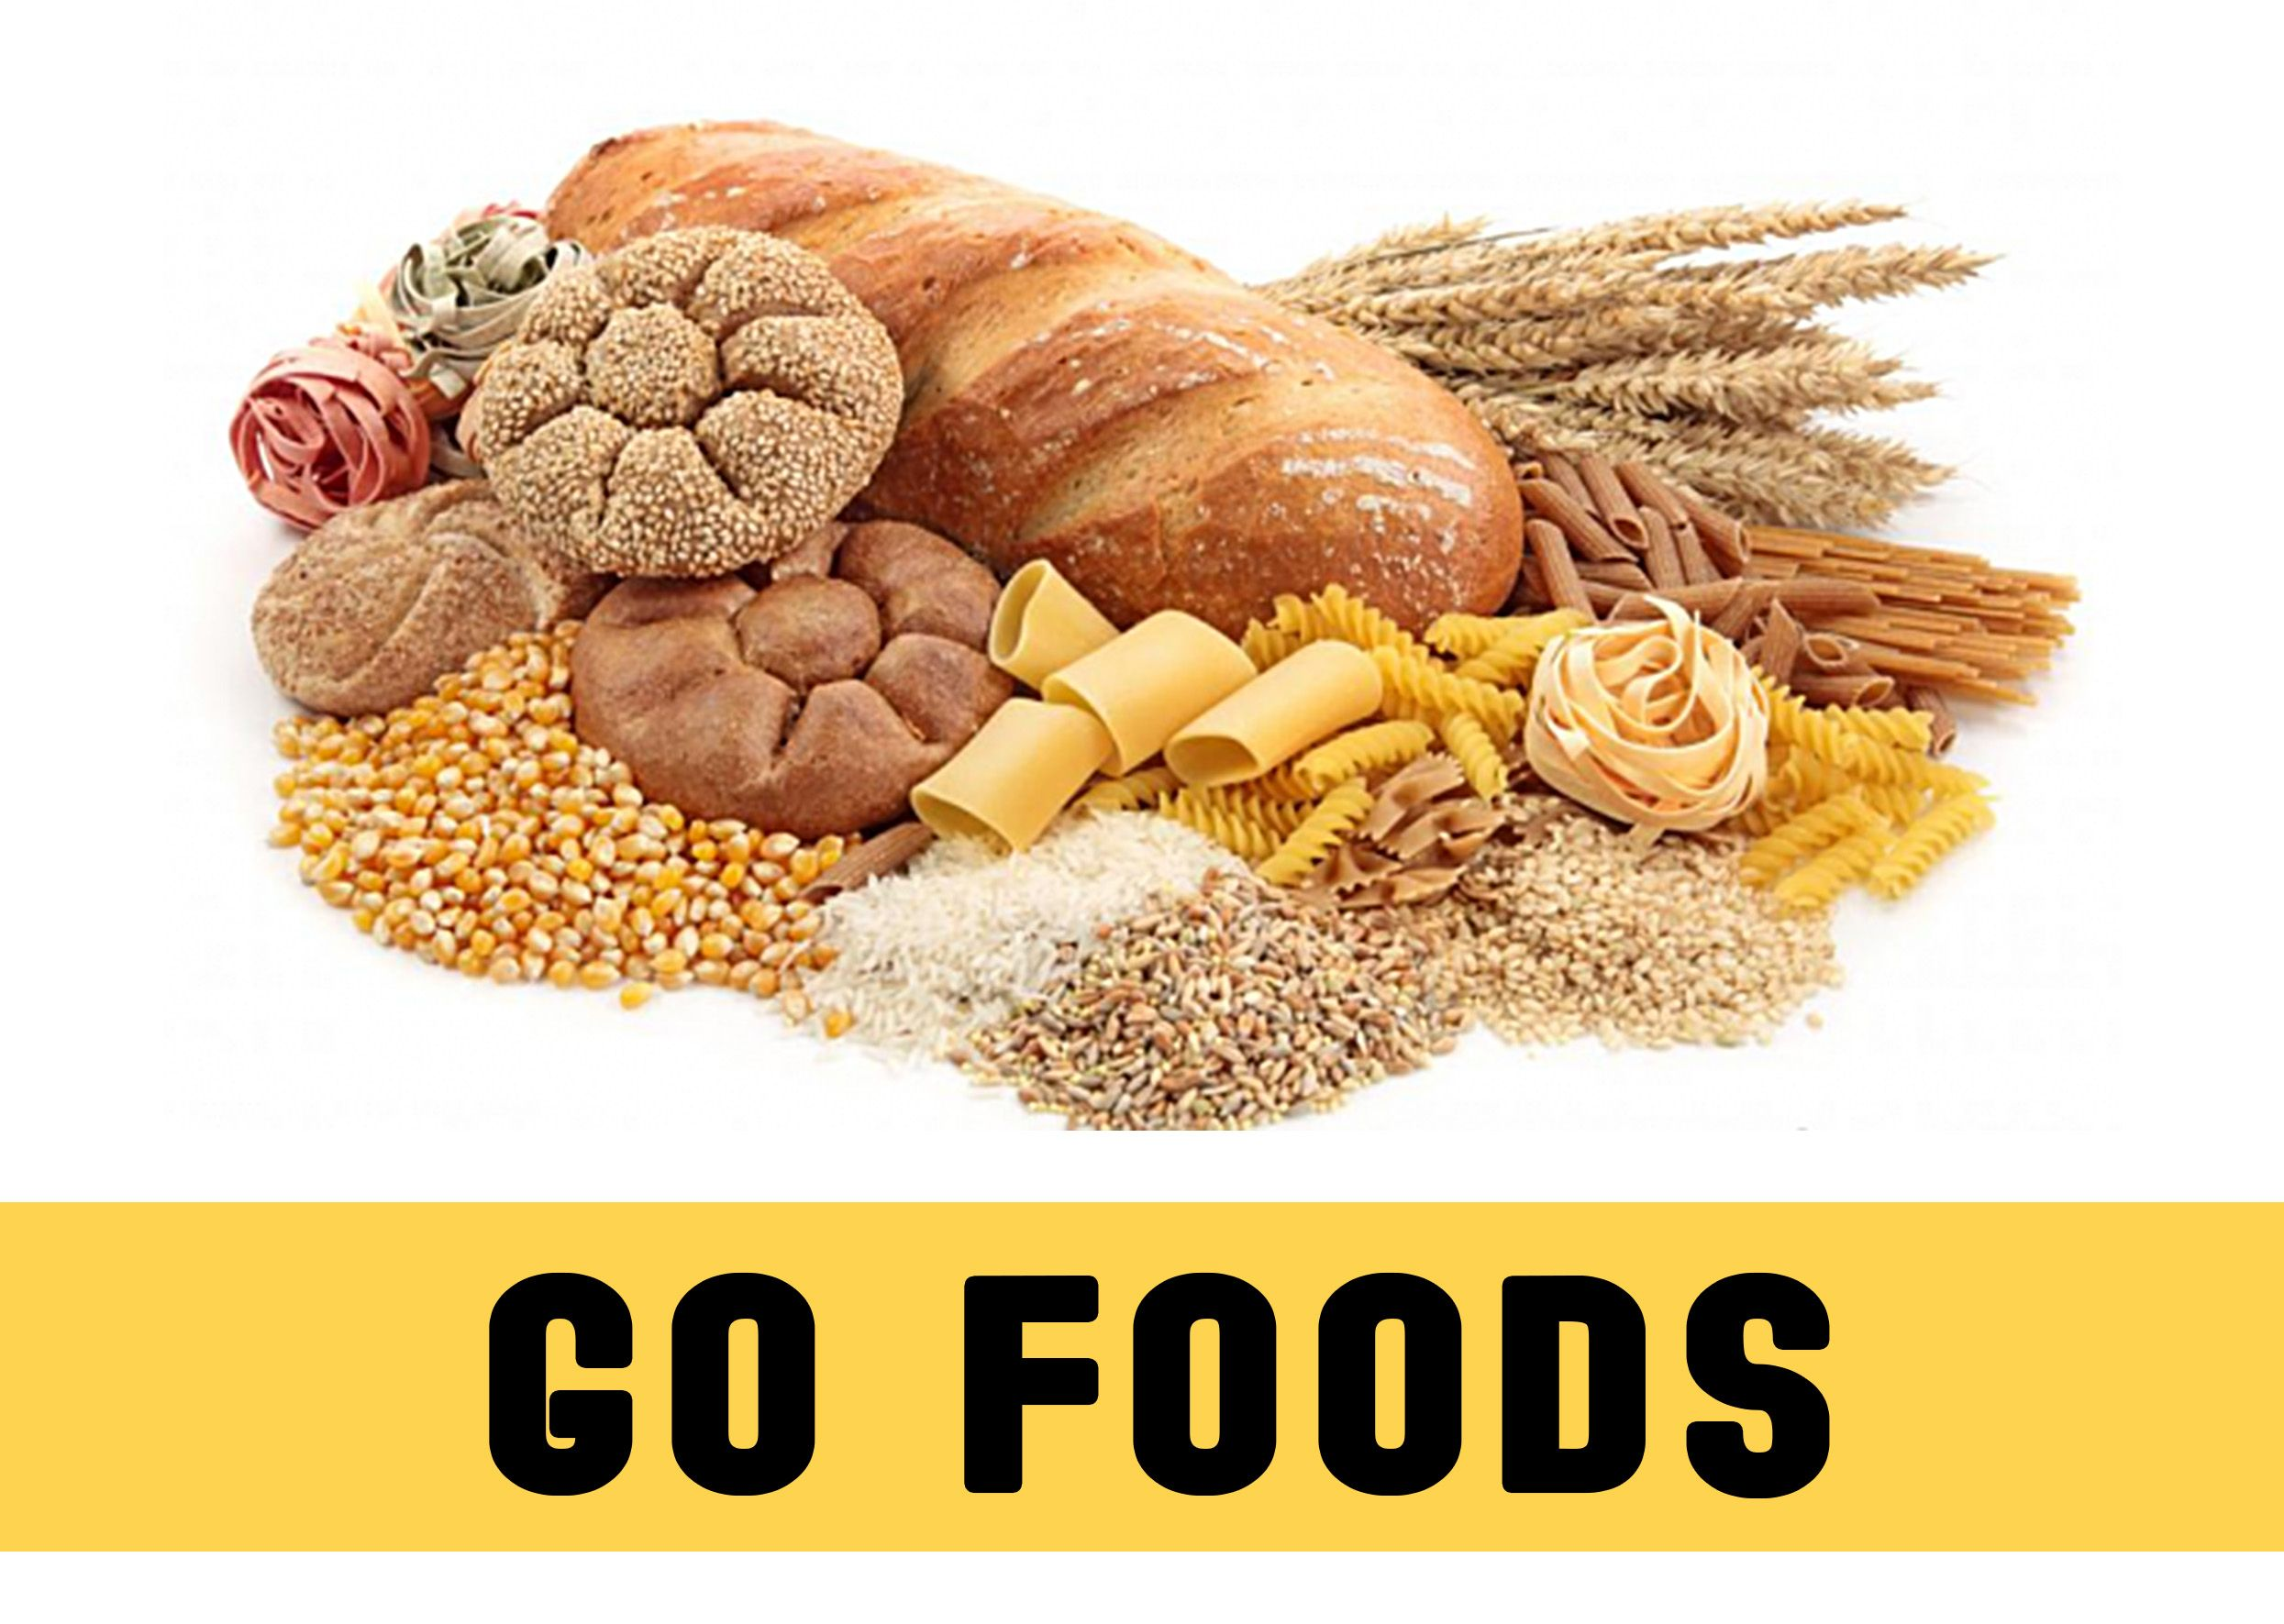 Gofoods